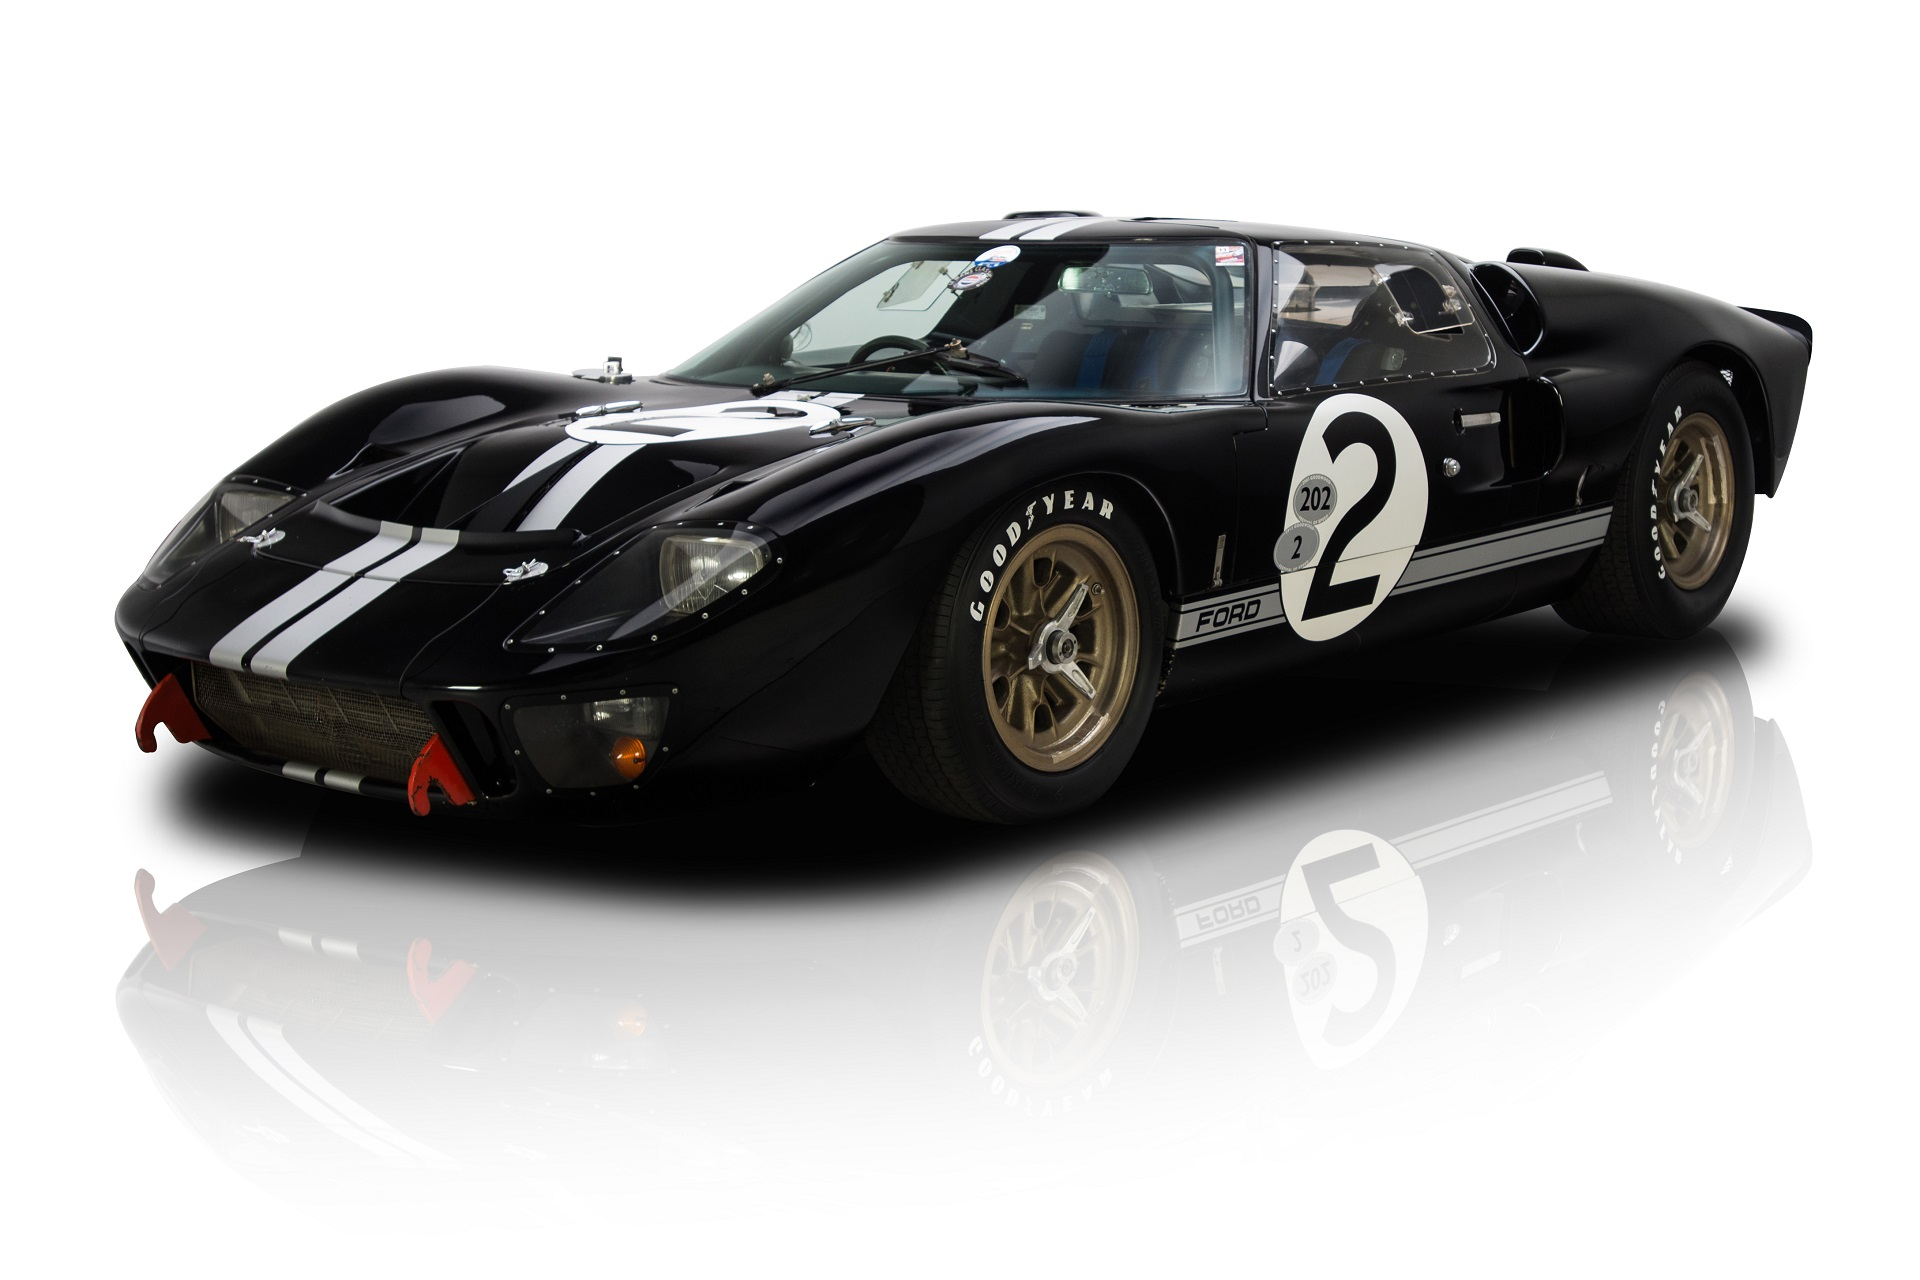 1966 Le Mans-winning Ford GT40 restoration video, part one